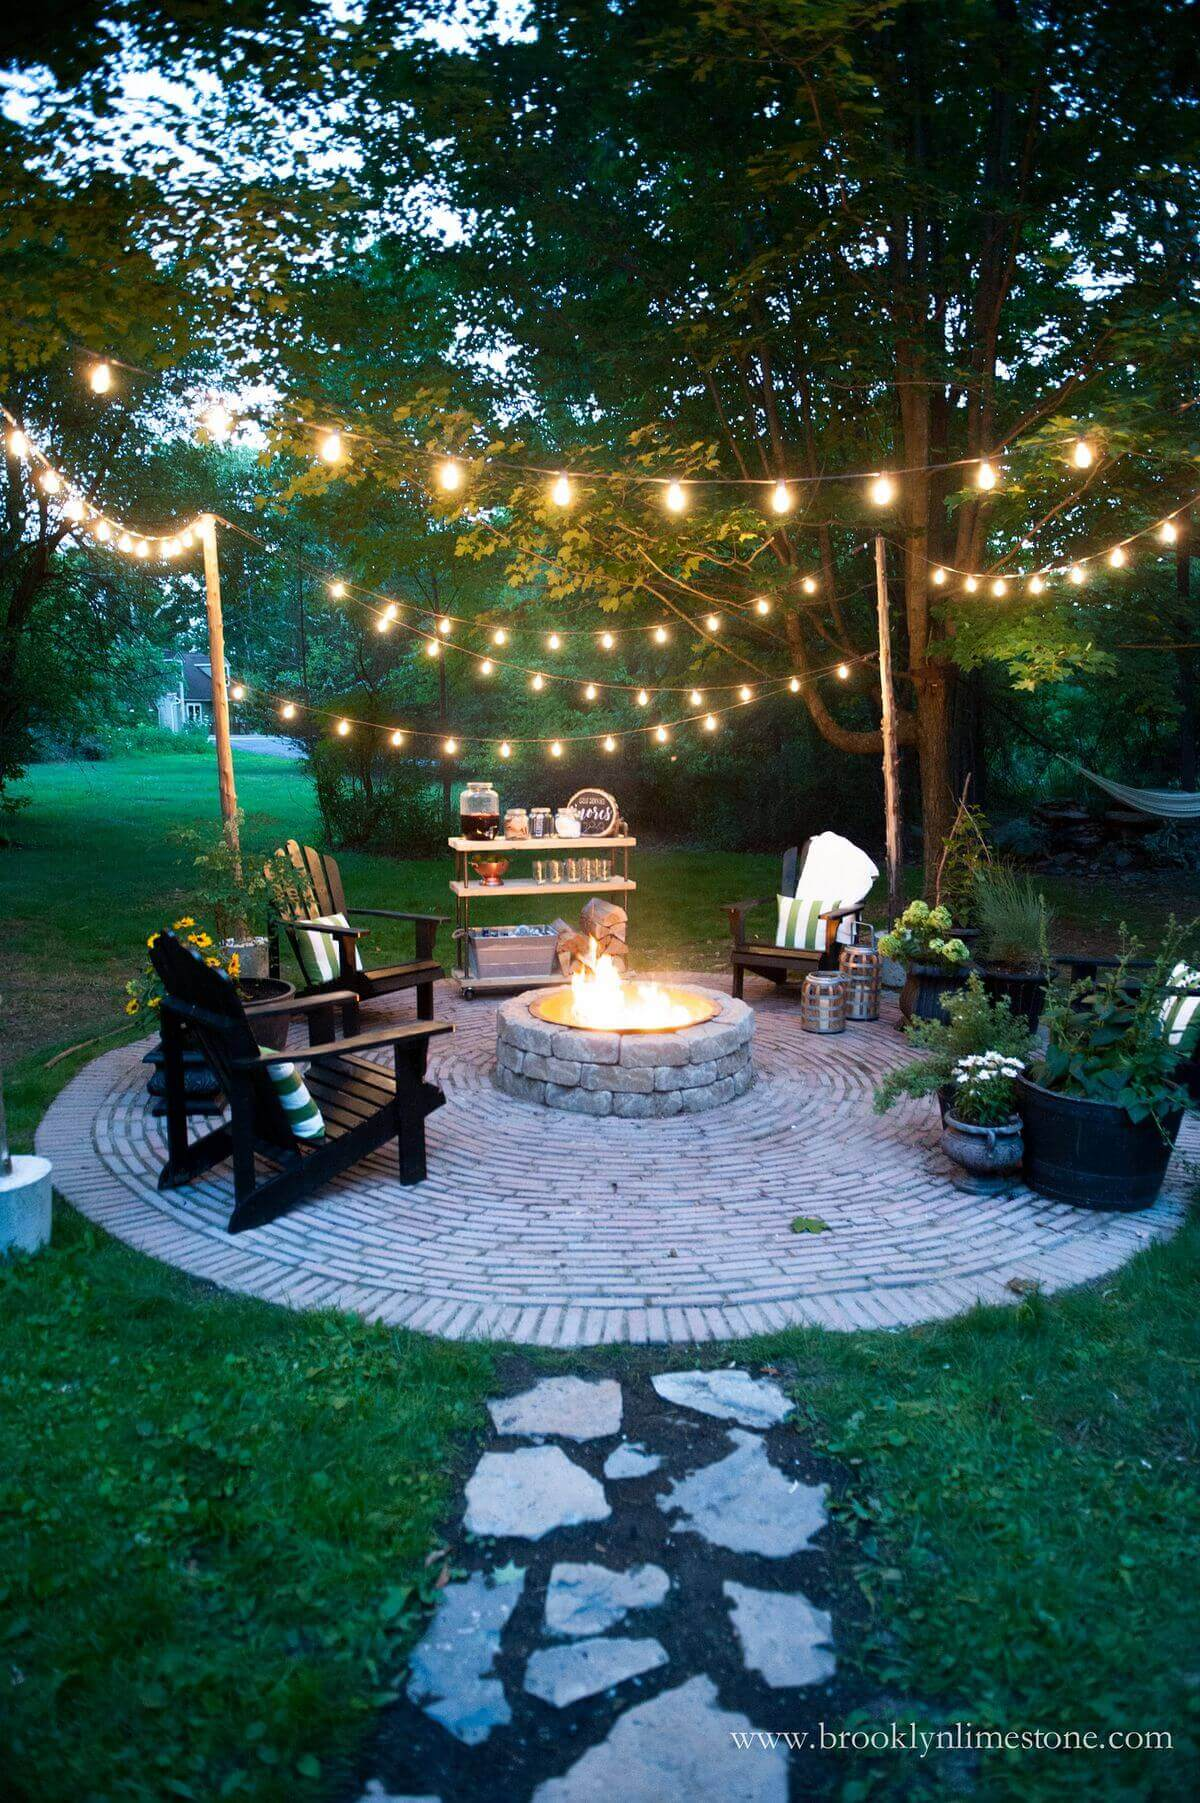 Round Firepit Area Idea for Nighttime   Awesome Firepit Area Ideas For Your Outdoor Activities